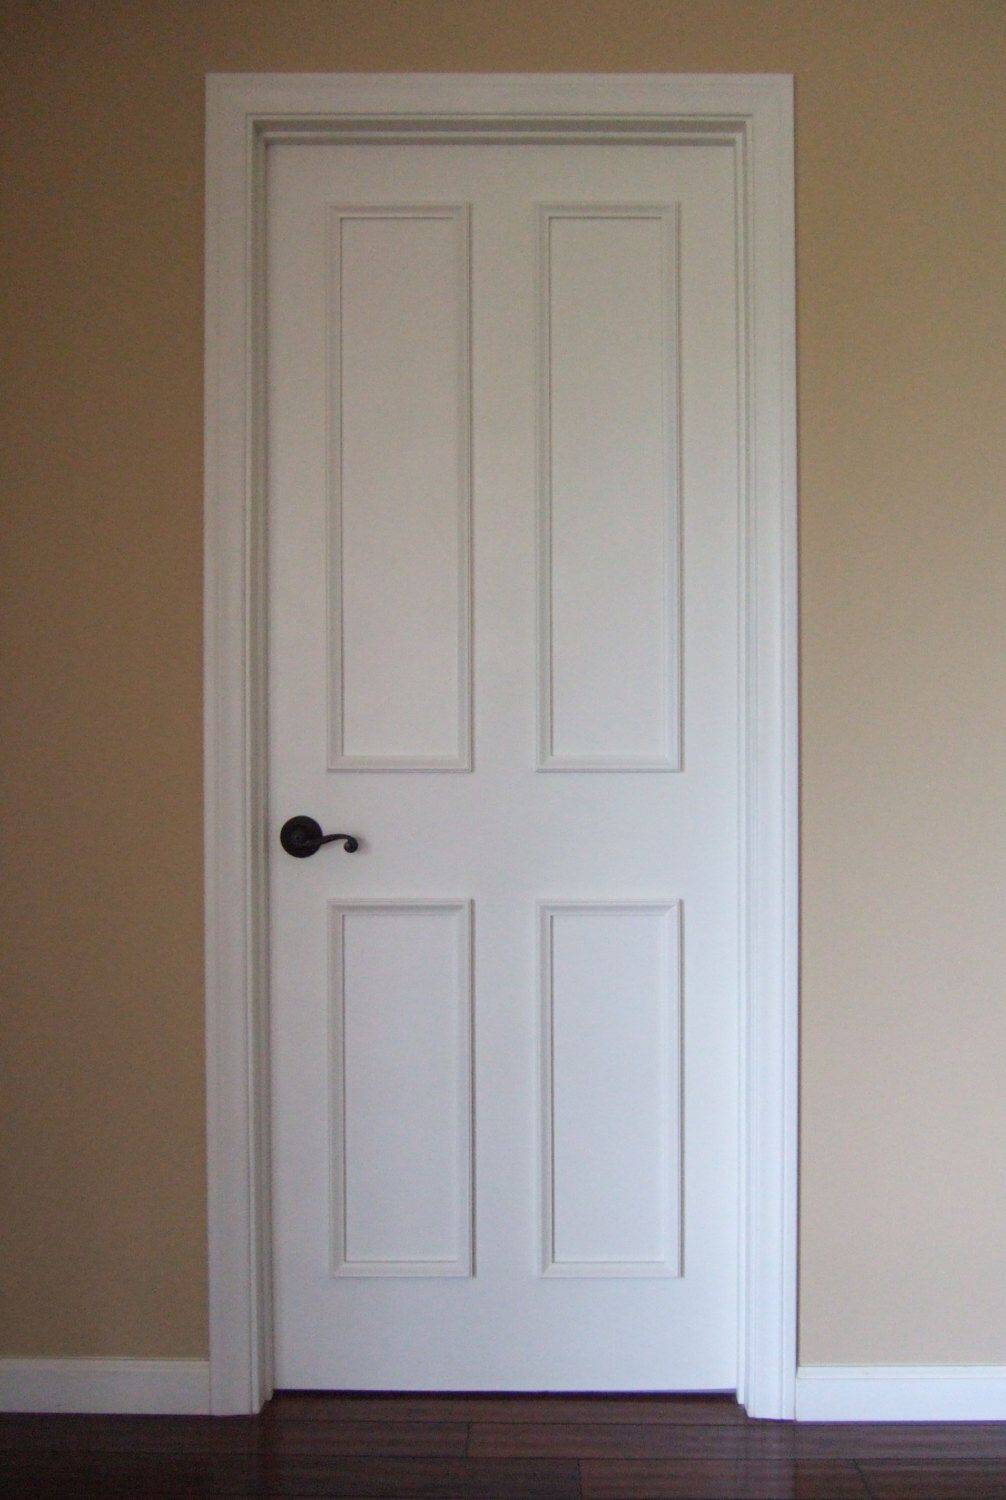 & Upgrade a Door with Molding | Interior door and Moldings Pezcame.Com